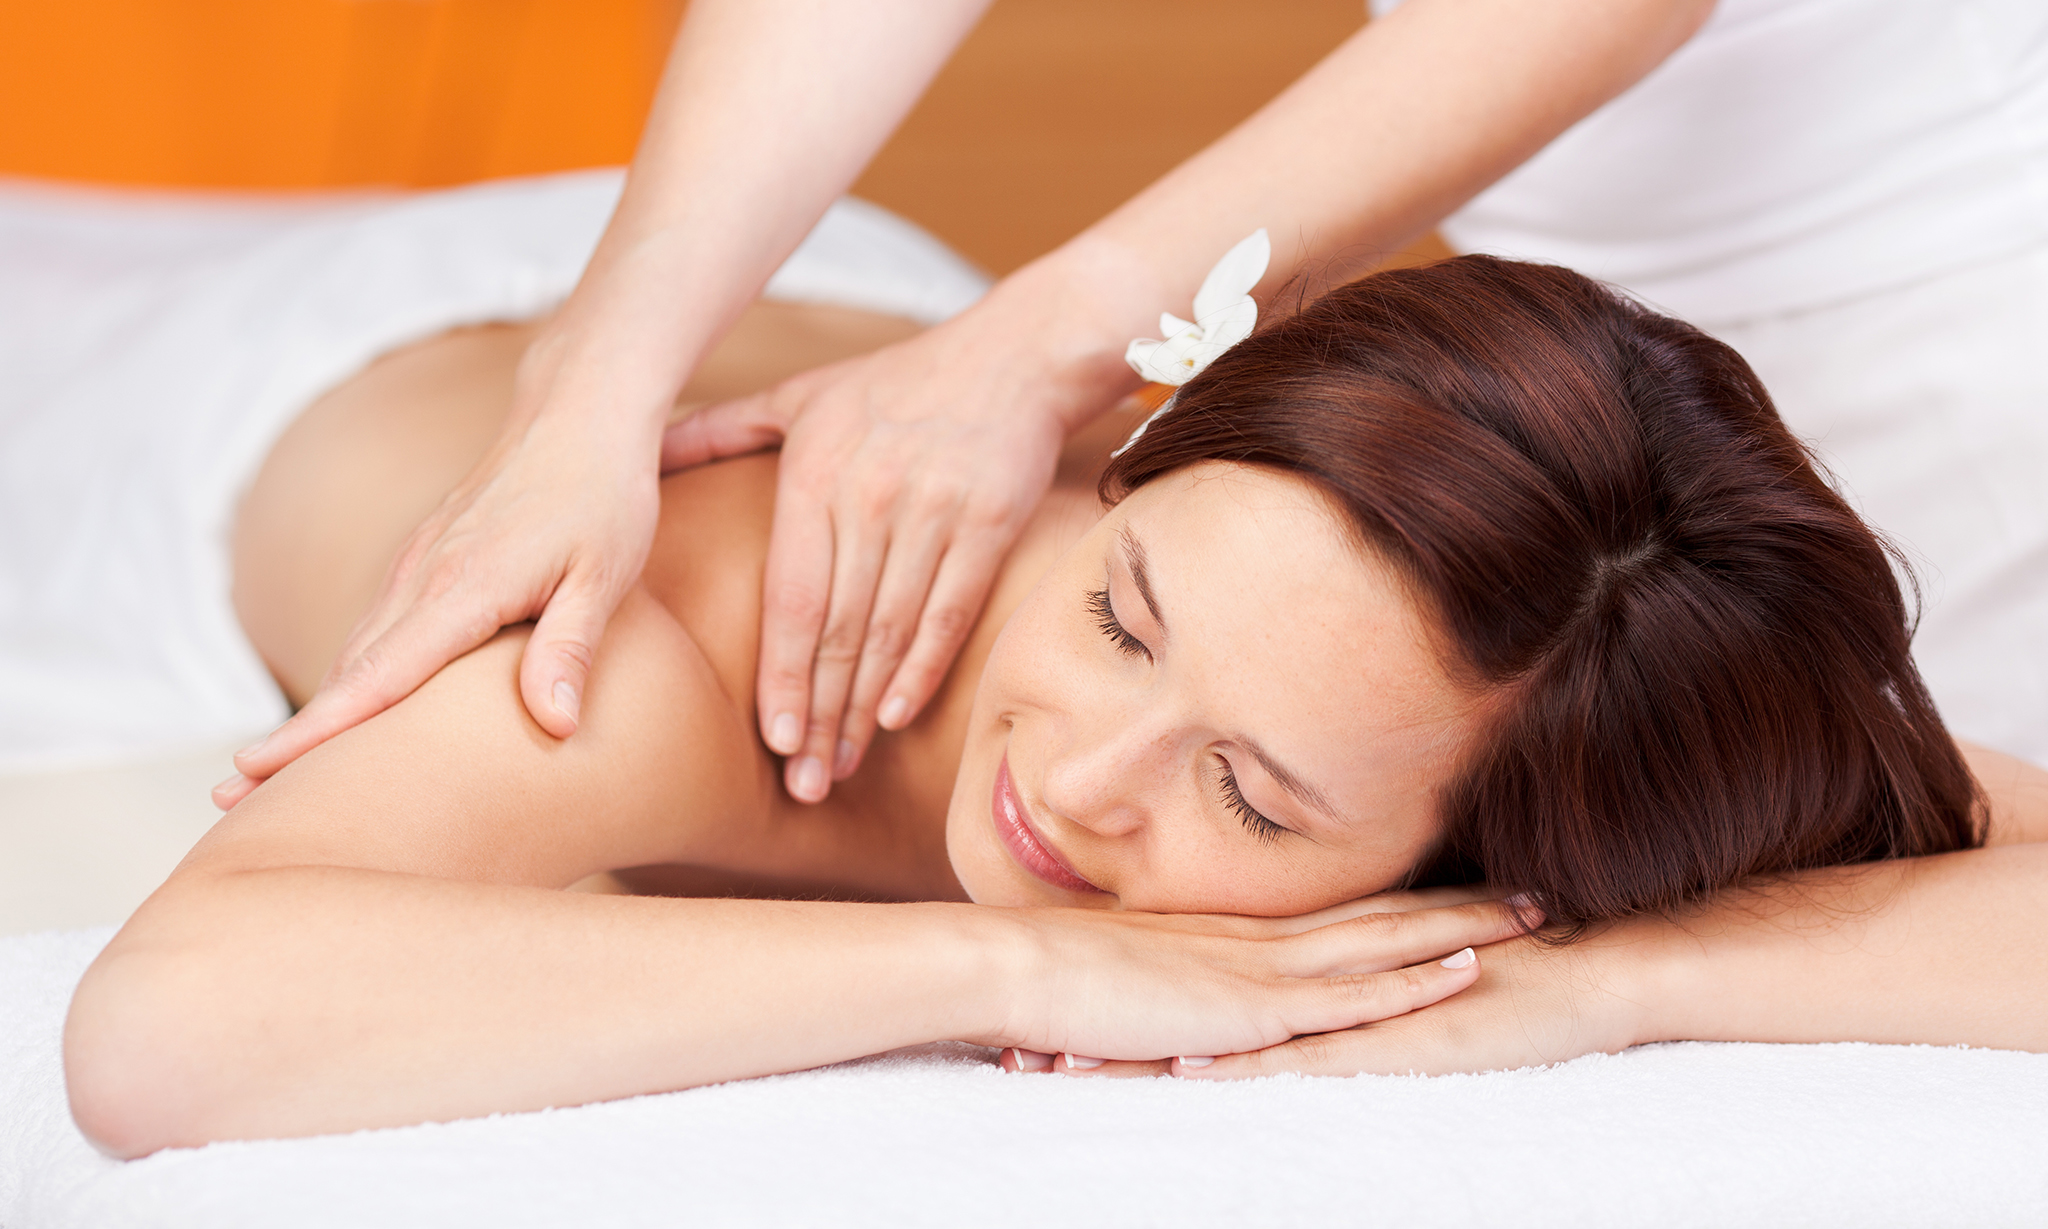 Where Can I Get Full Body Massage Full Body Massage Body Scrubs More At The Grand Spa Indrapuram